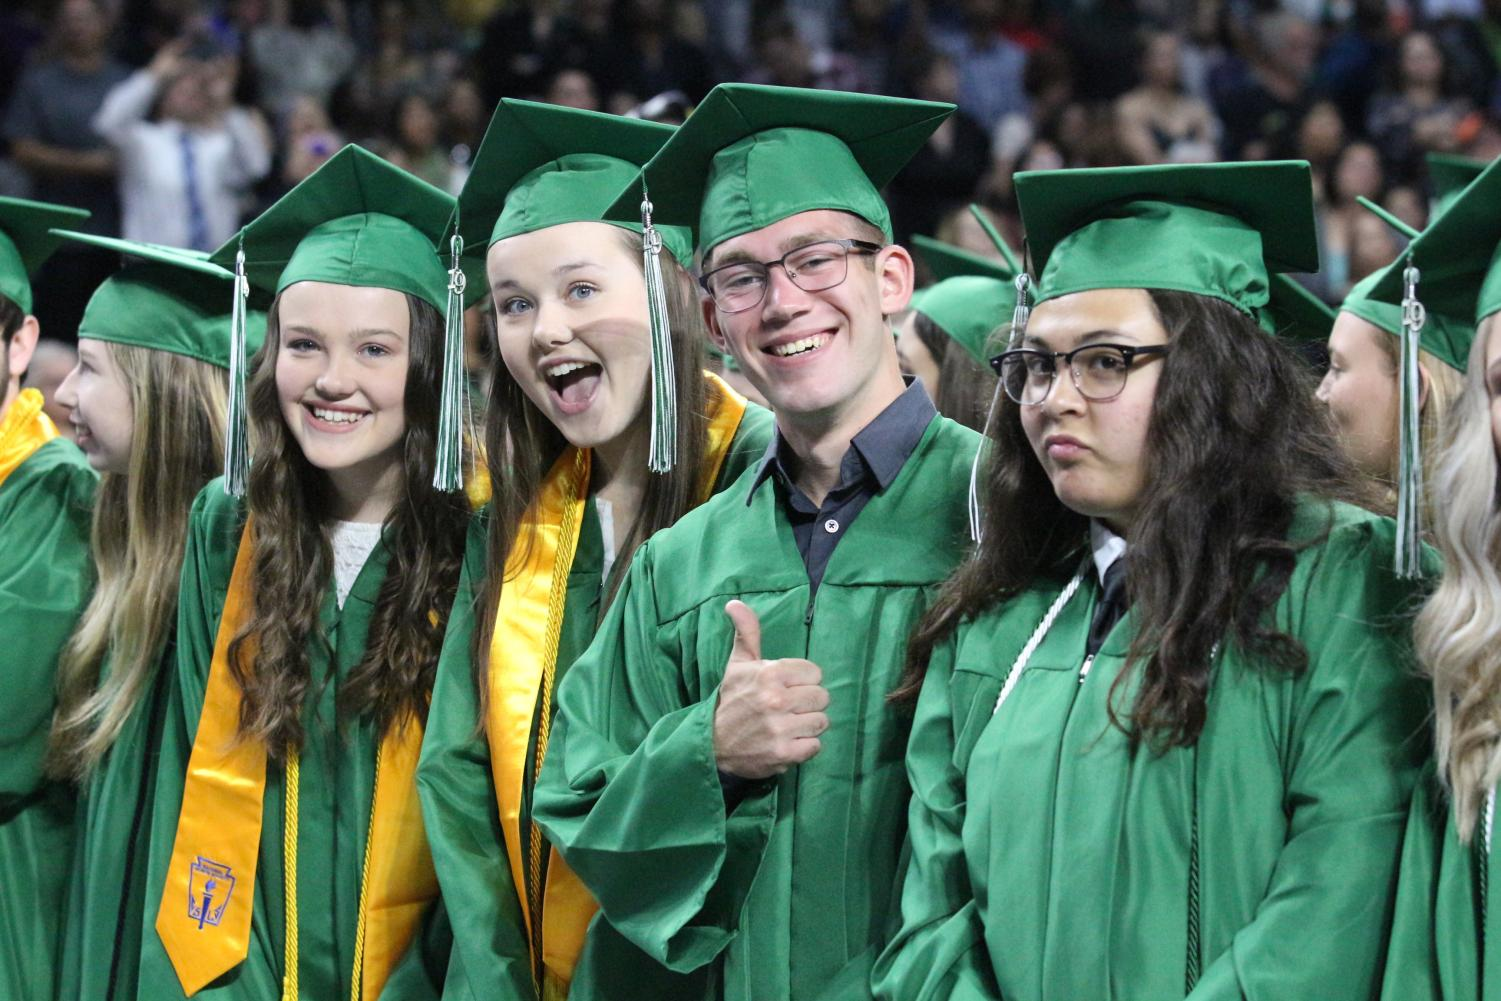 Class of 2019 Graduation (Photos by Kiley Hale)